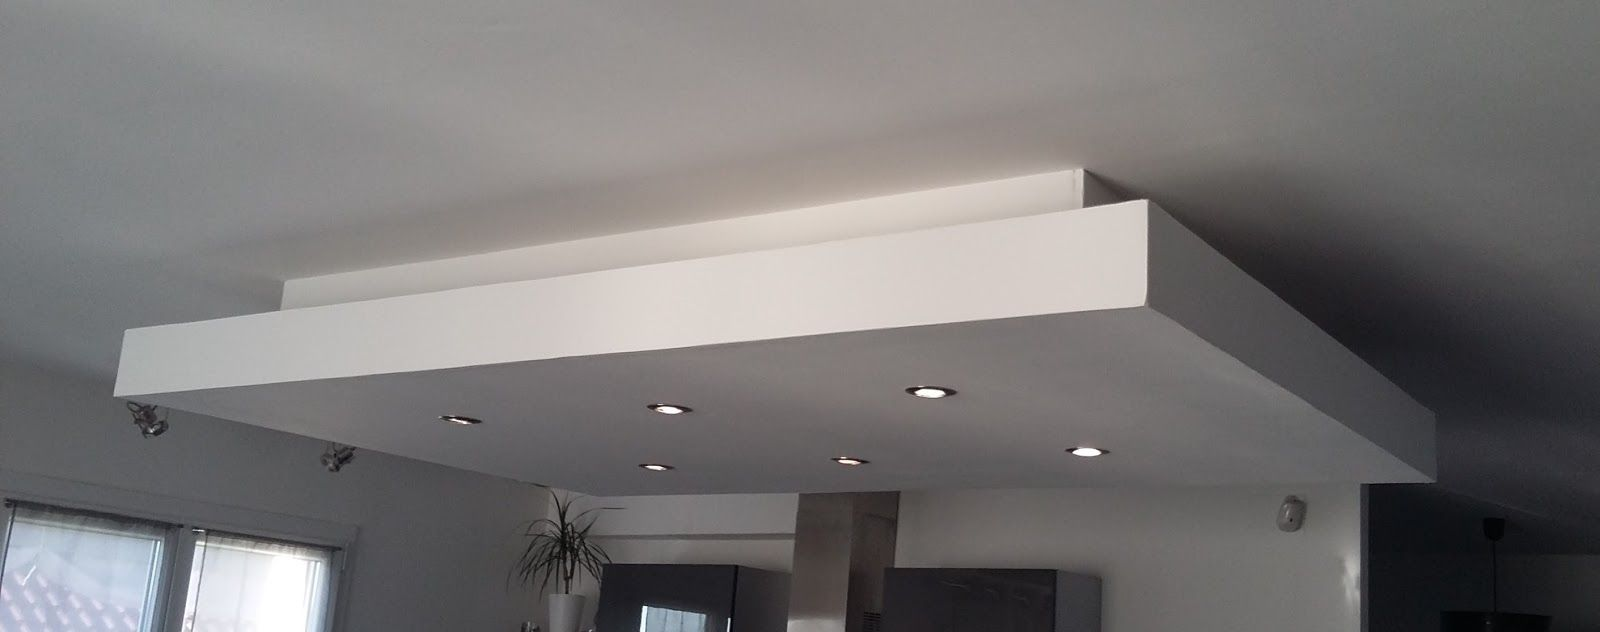 D roch plafond decaissement descendu suspendu placo for Caisson lumineux plafond